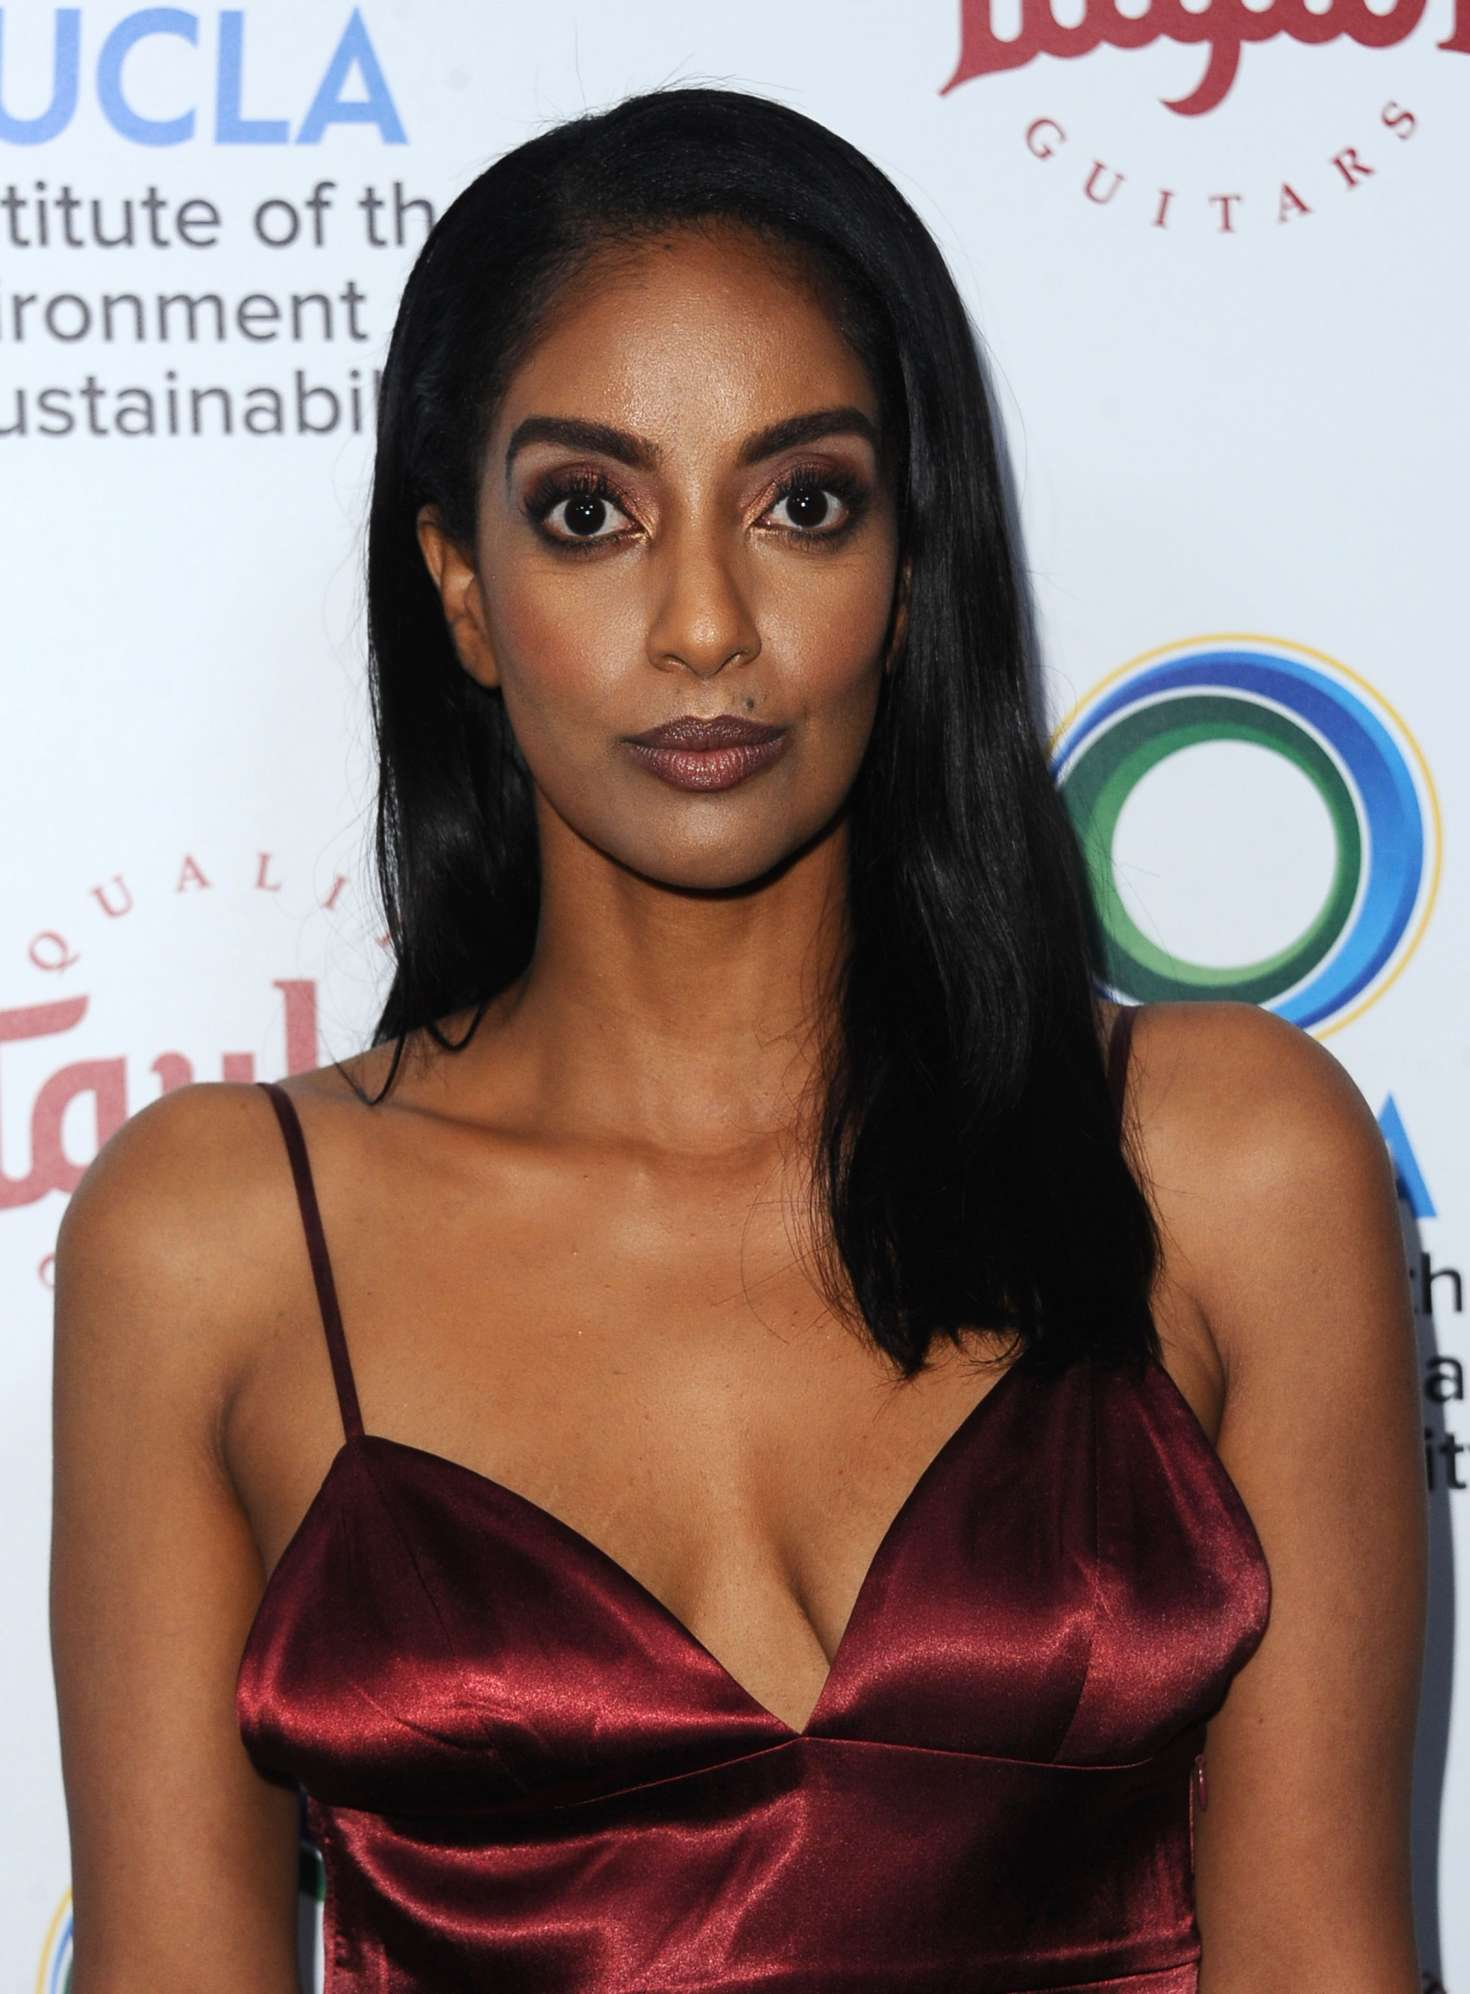 Azie Tesfai 2018 : Azie Tesfai: 2018 UCLAs Institute of the Environment and Sustainability Gala -05